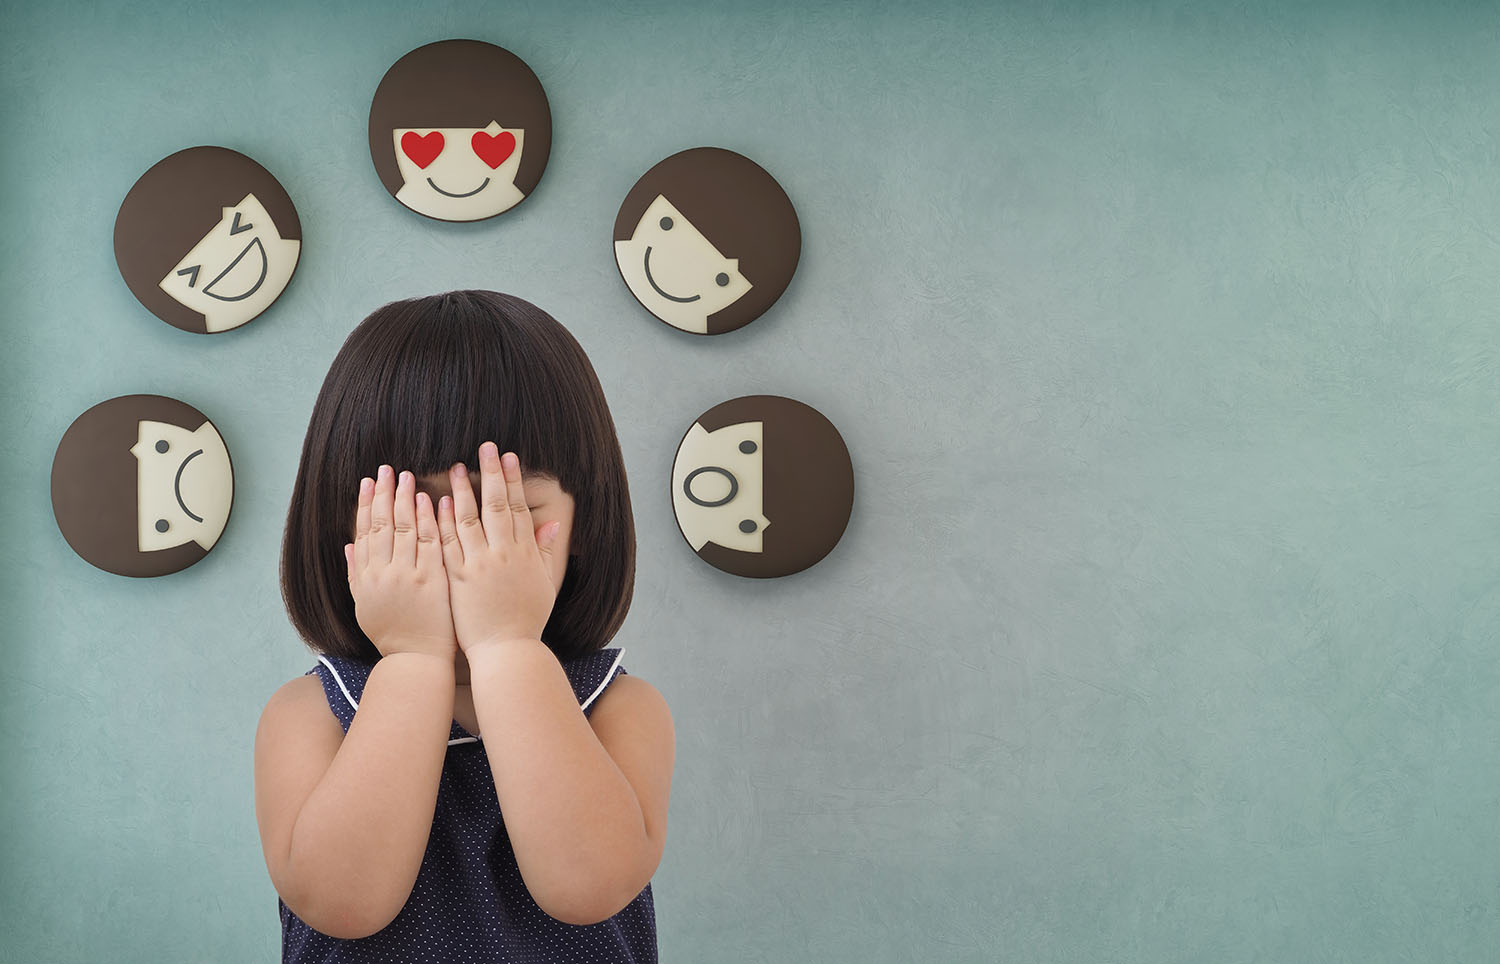 A young girl holding her hands over her face with different emotions surrounding her head.